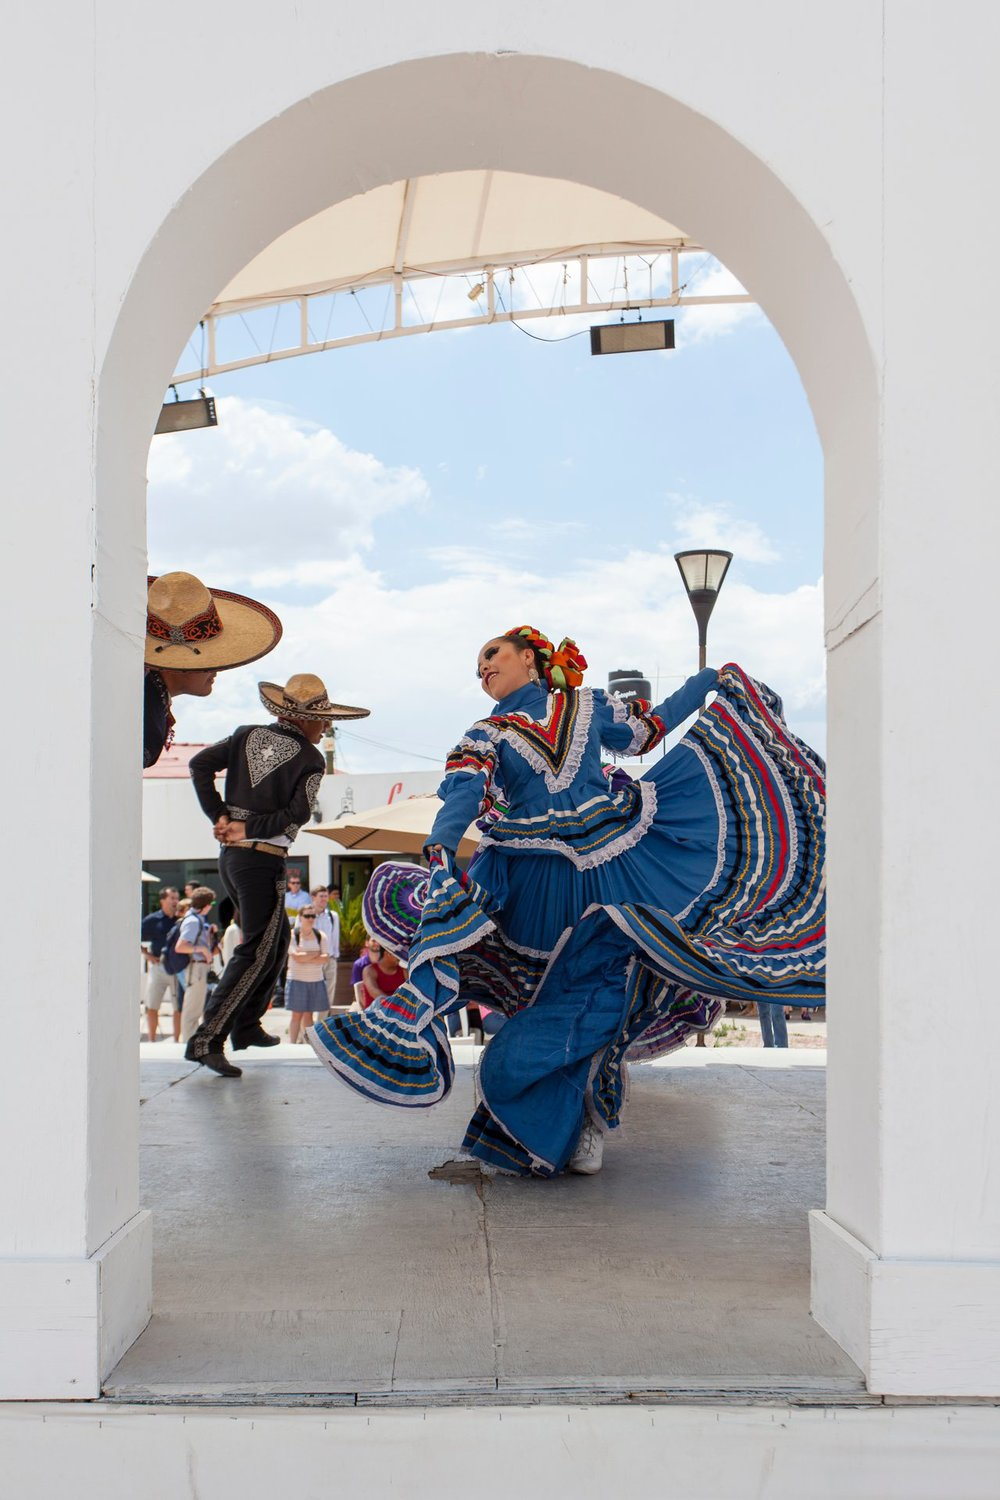 A View of The Dance, Durango, 2014